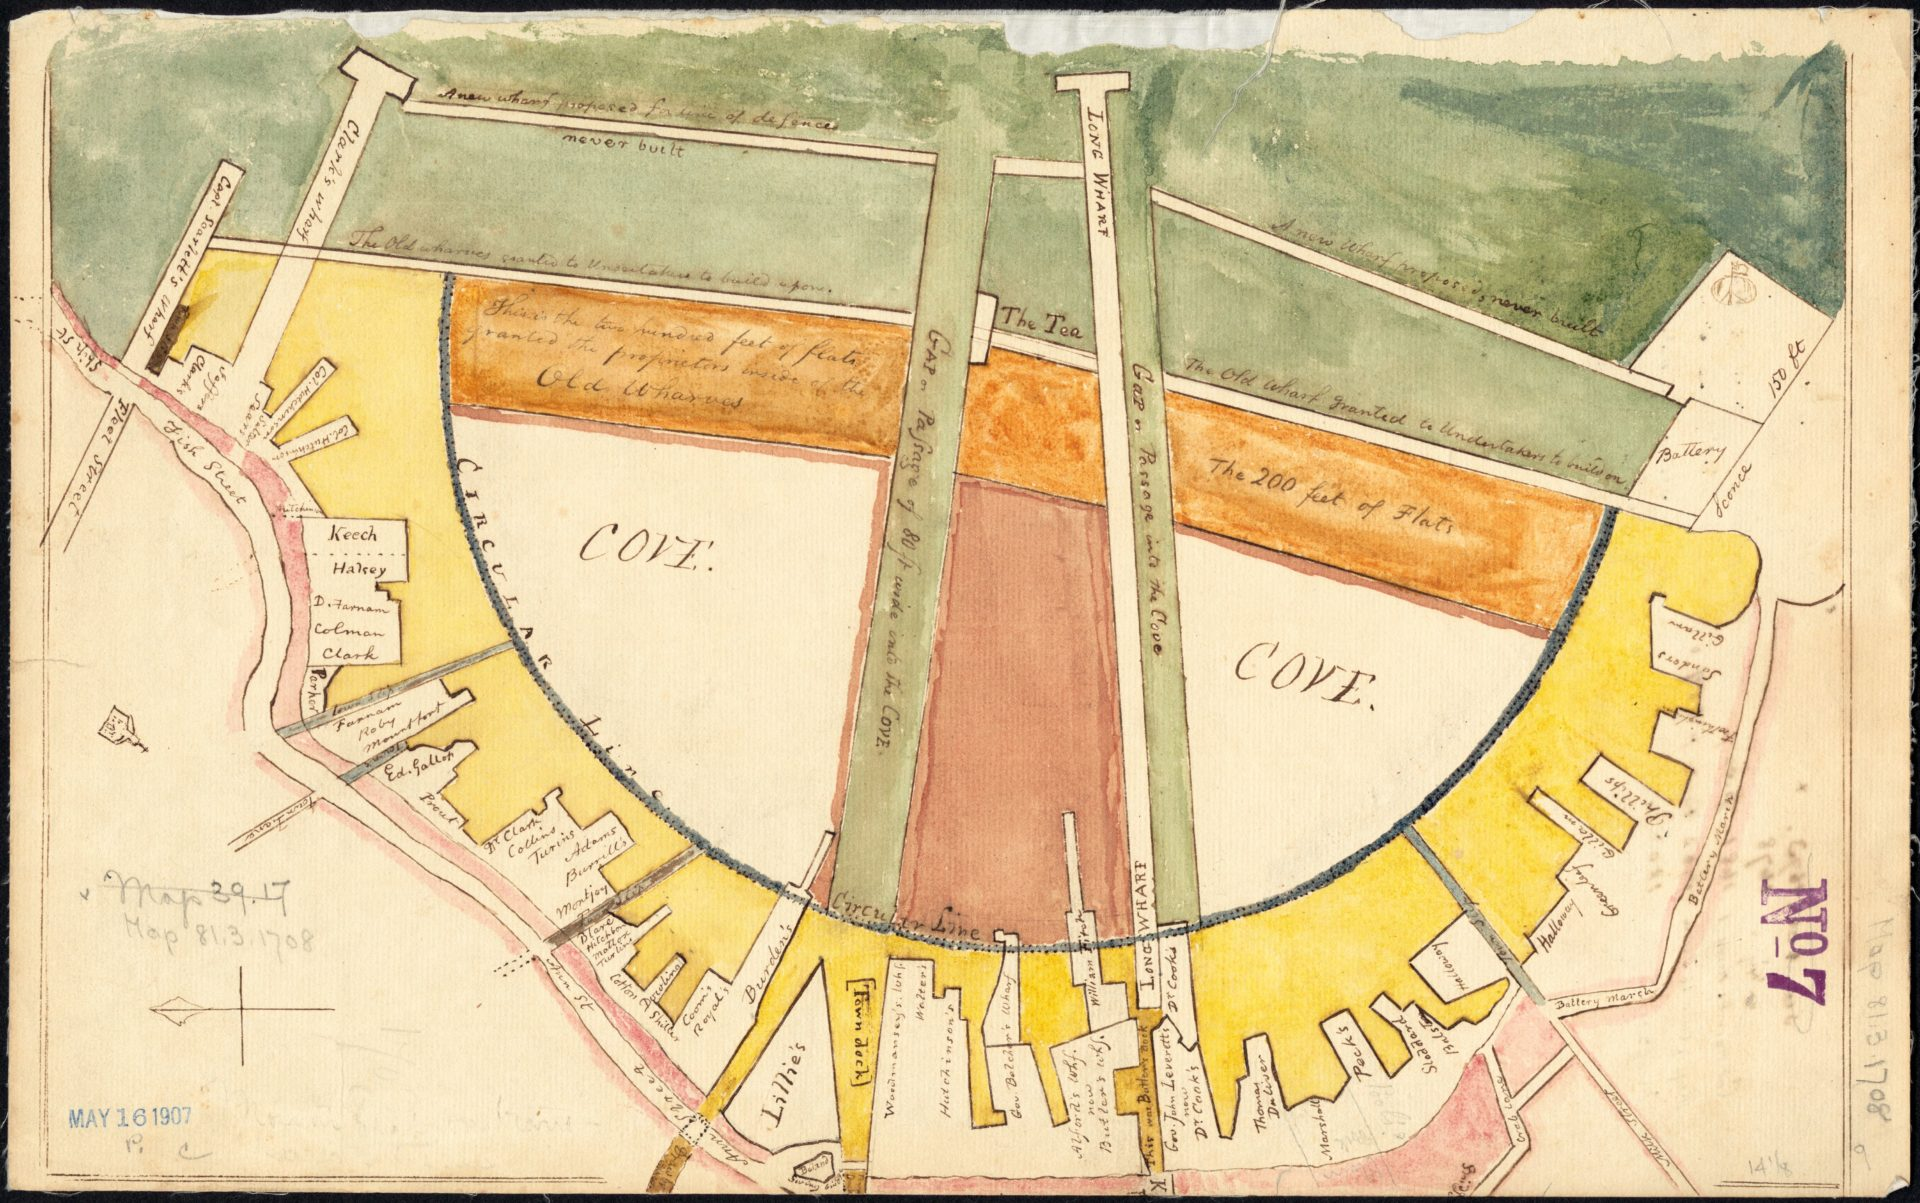 Caleb H. Snow after Jacob Sheafe, Manuscript plan showing wharves of Boston (ca. 1820, original 1708). (Courtesy the Muriel G. and Norman B. Leventhal Family Foundation)